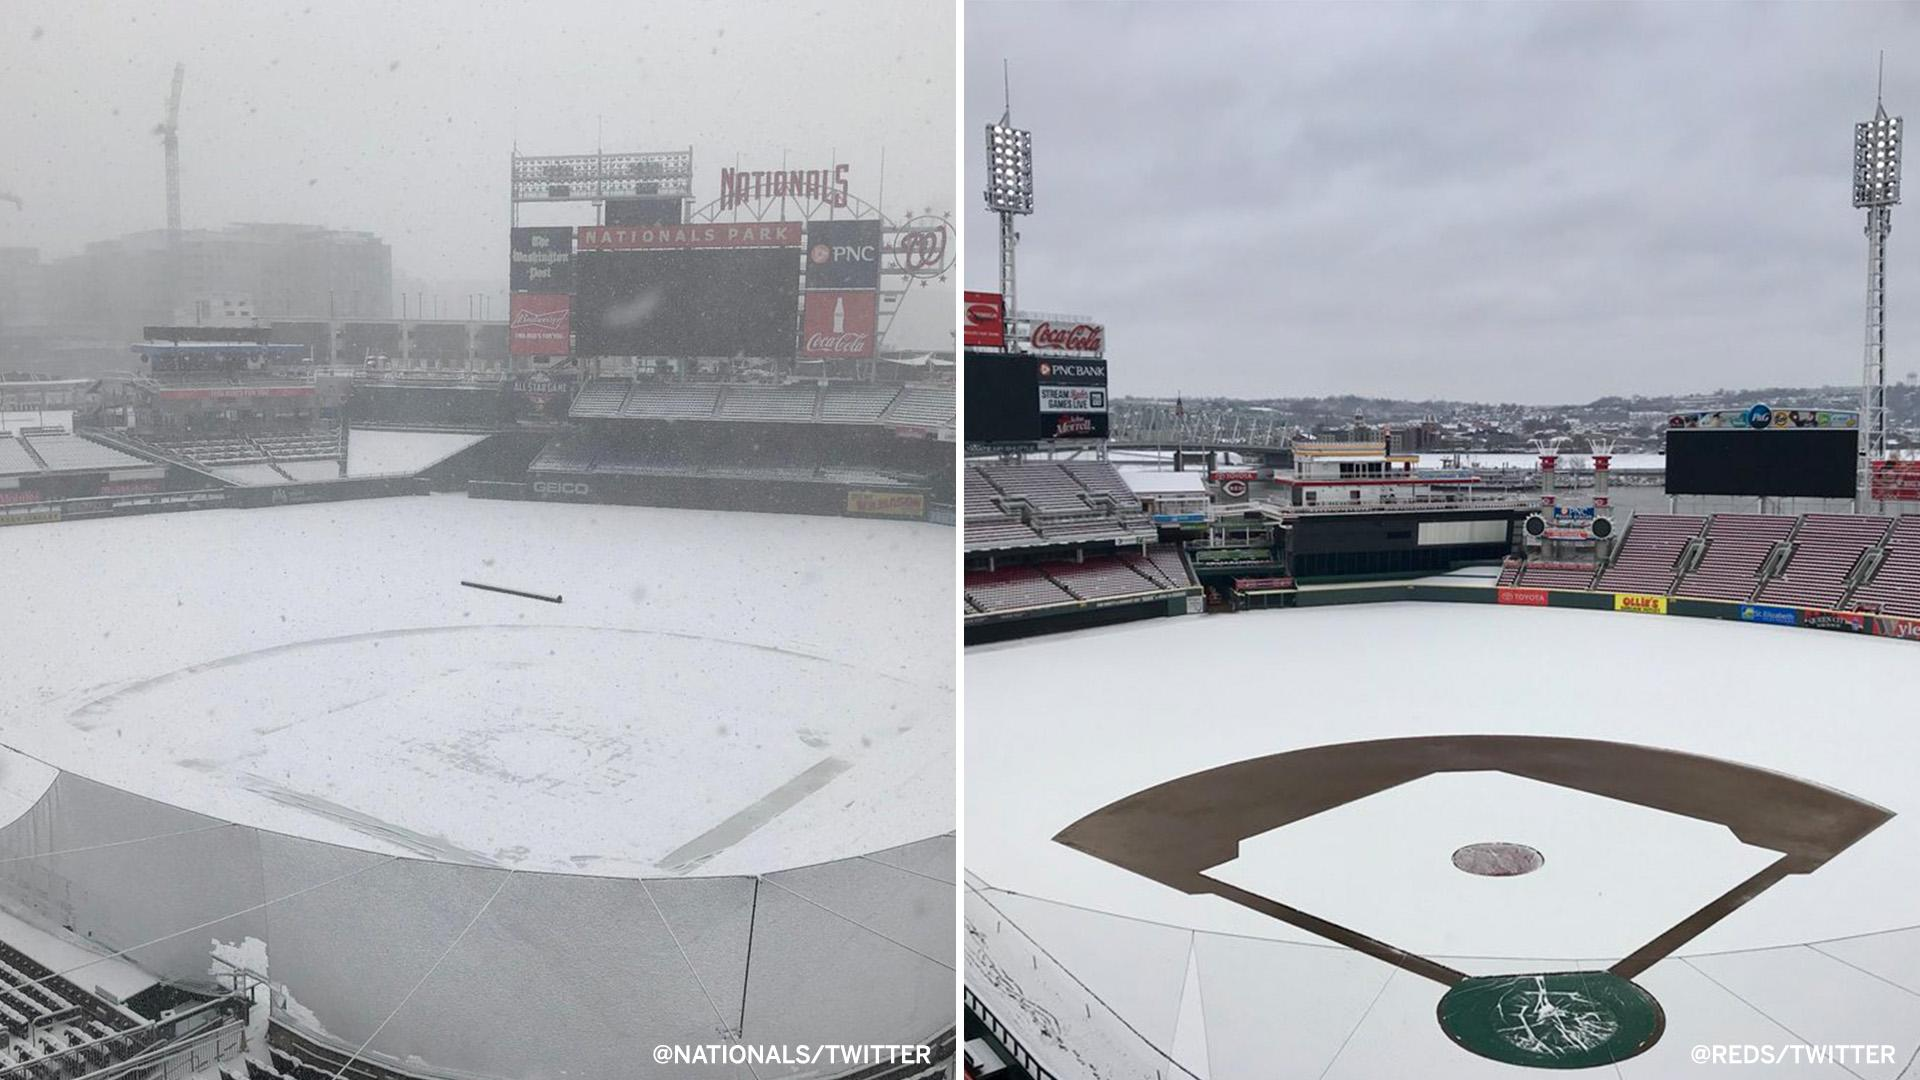 The @Nationals and @Reds are supposed to host games next week but uhh... https://t.co/iXSYxOoaLY